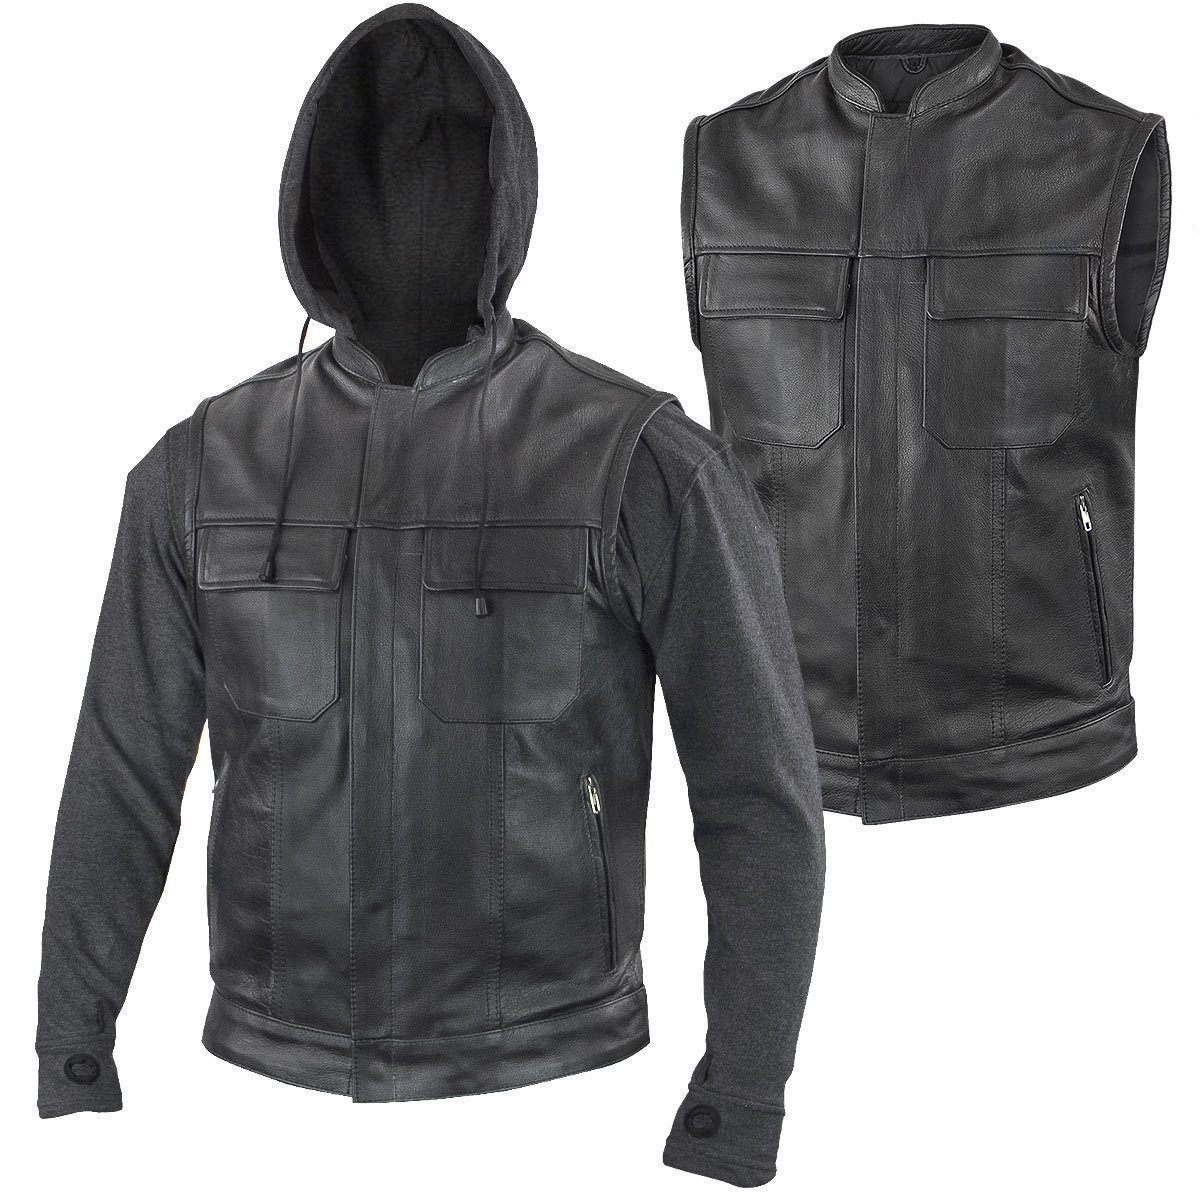 Xelement BXU1006 'Jax' Men's Black Leather Motorcycle Hoodie Jacket